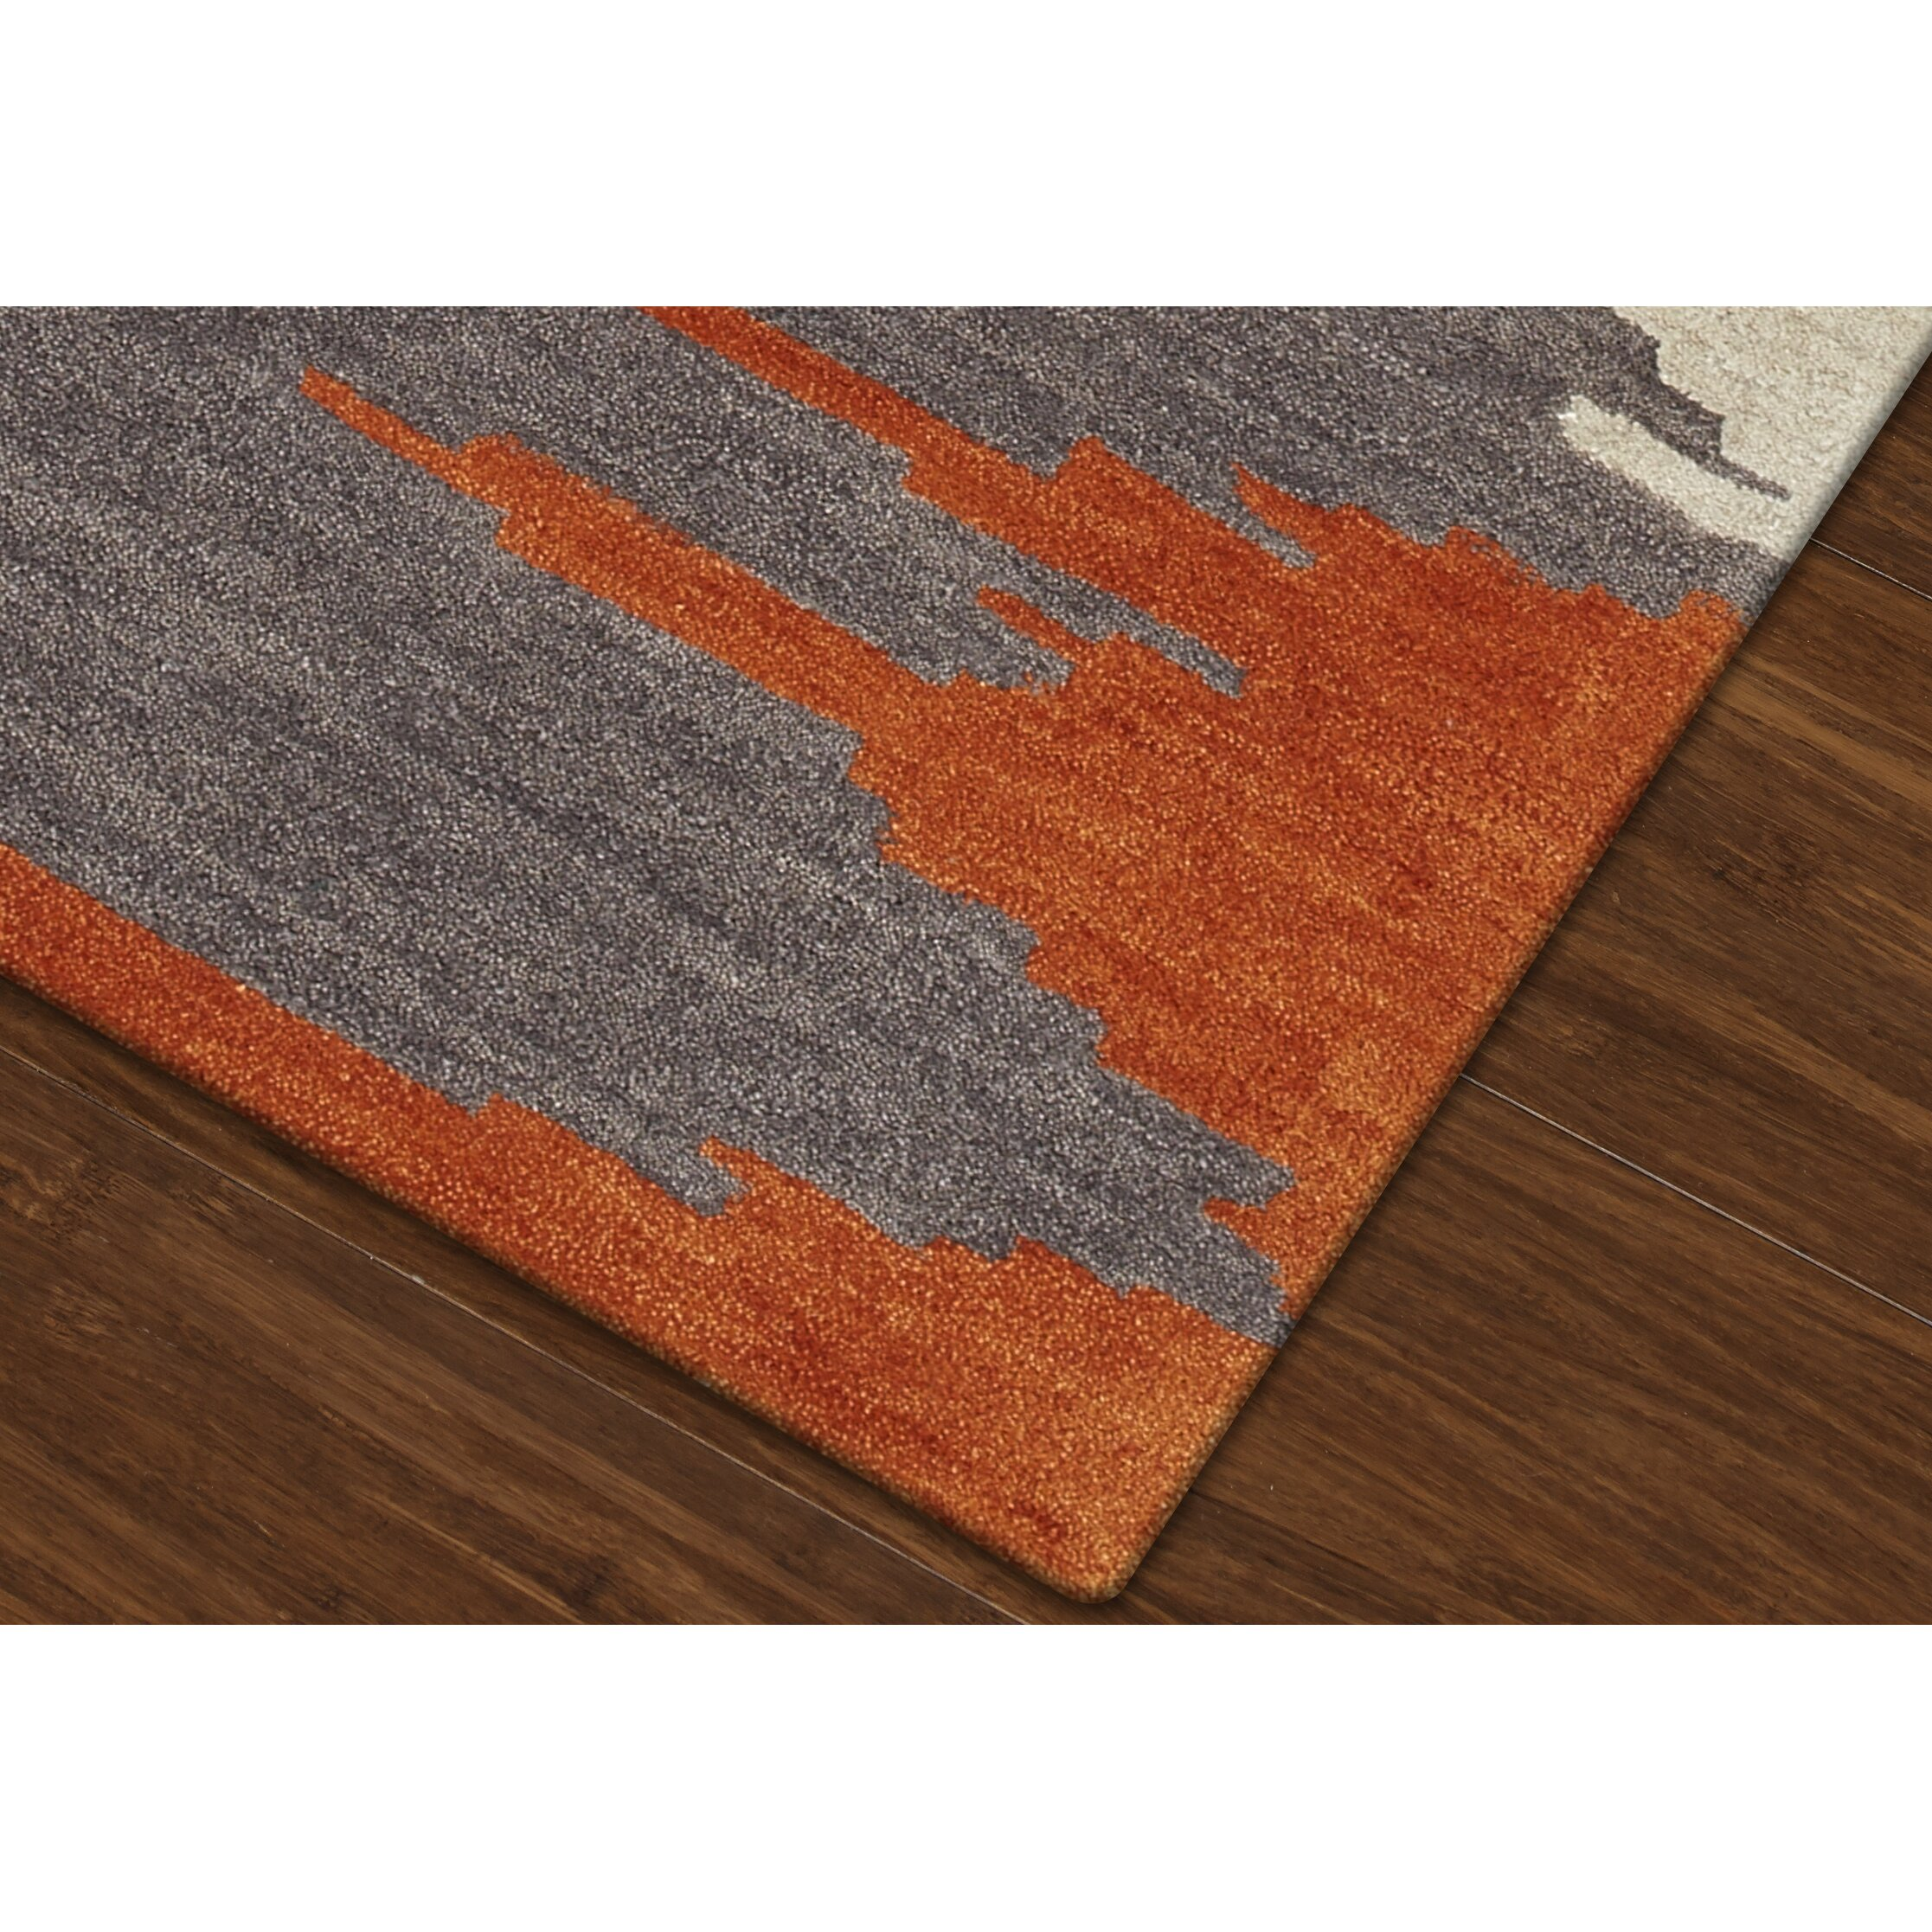 Dalyn Rug Co Impulse Orange Gray Area Rug Amp Reviews Wayfair